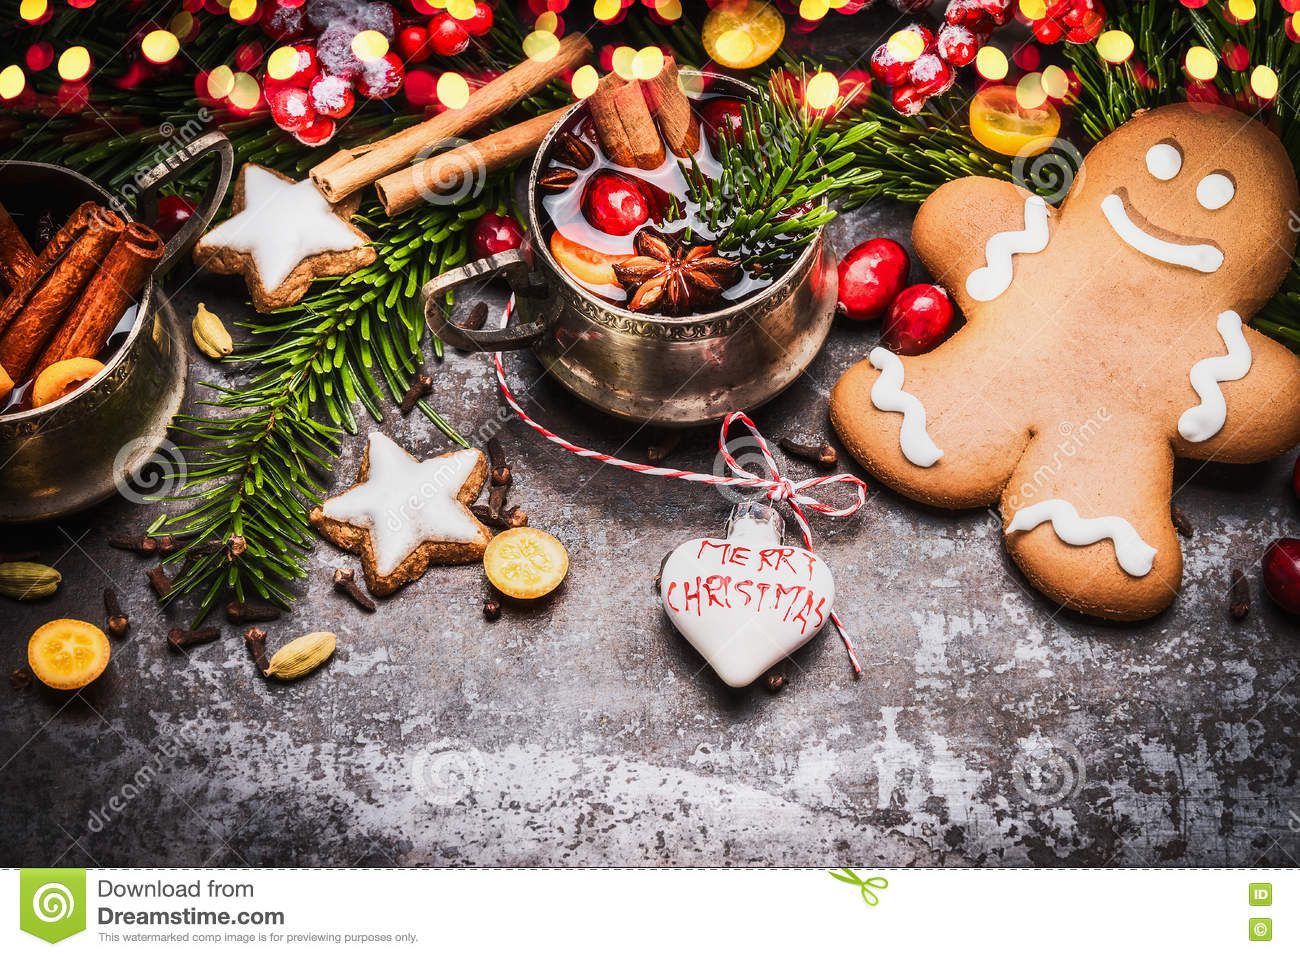 Smiling gingerbread men with mug of mulled wine , Christmas decoration and holiday cookies and spices on dark rustic background wi